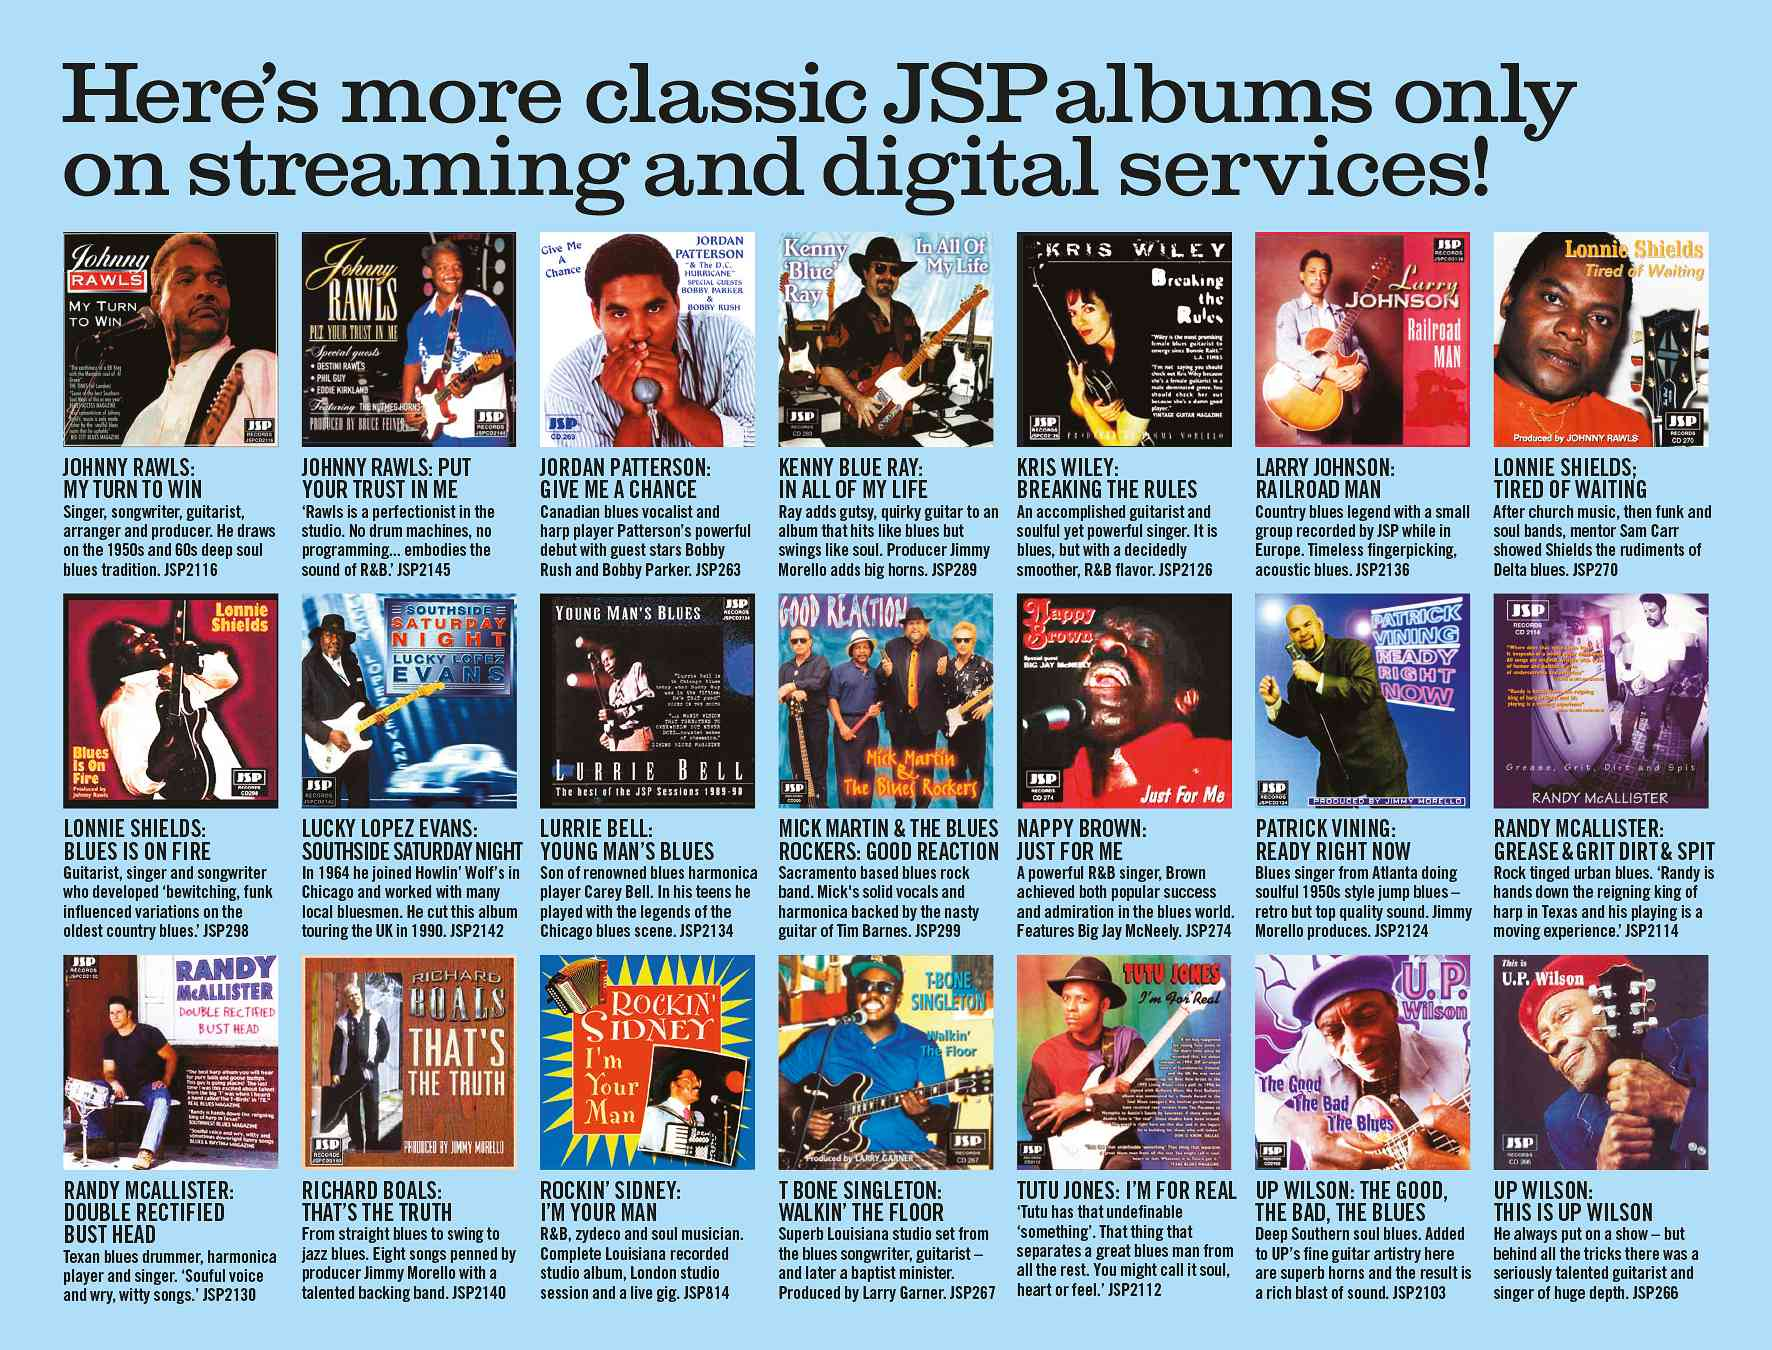 Here's More Classic JSP Albums Only On Streaming and Digital Services!